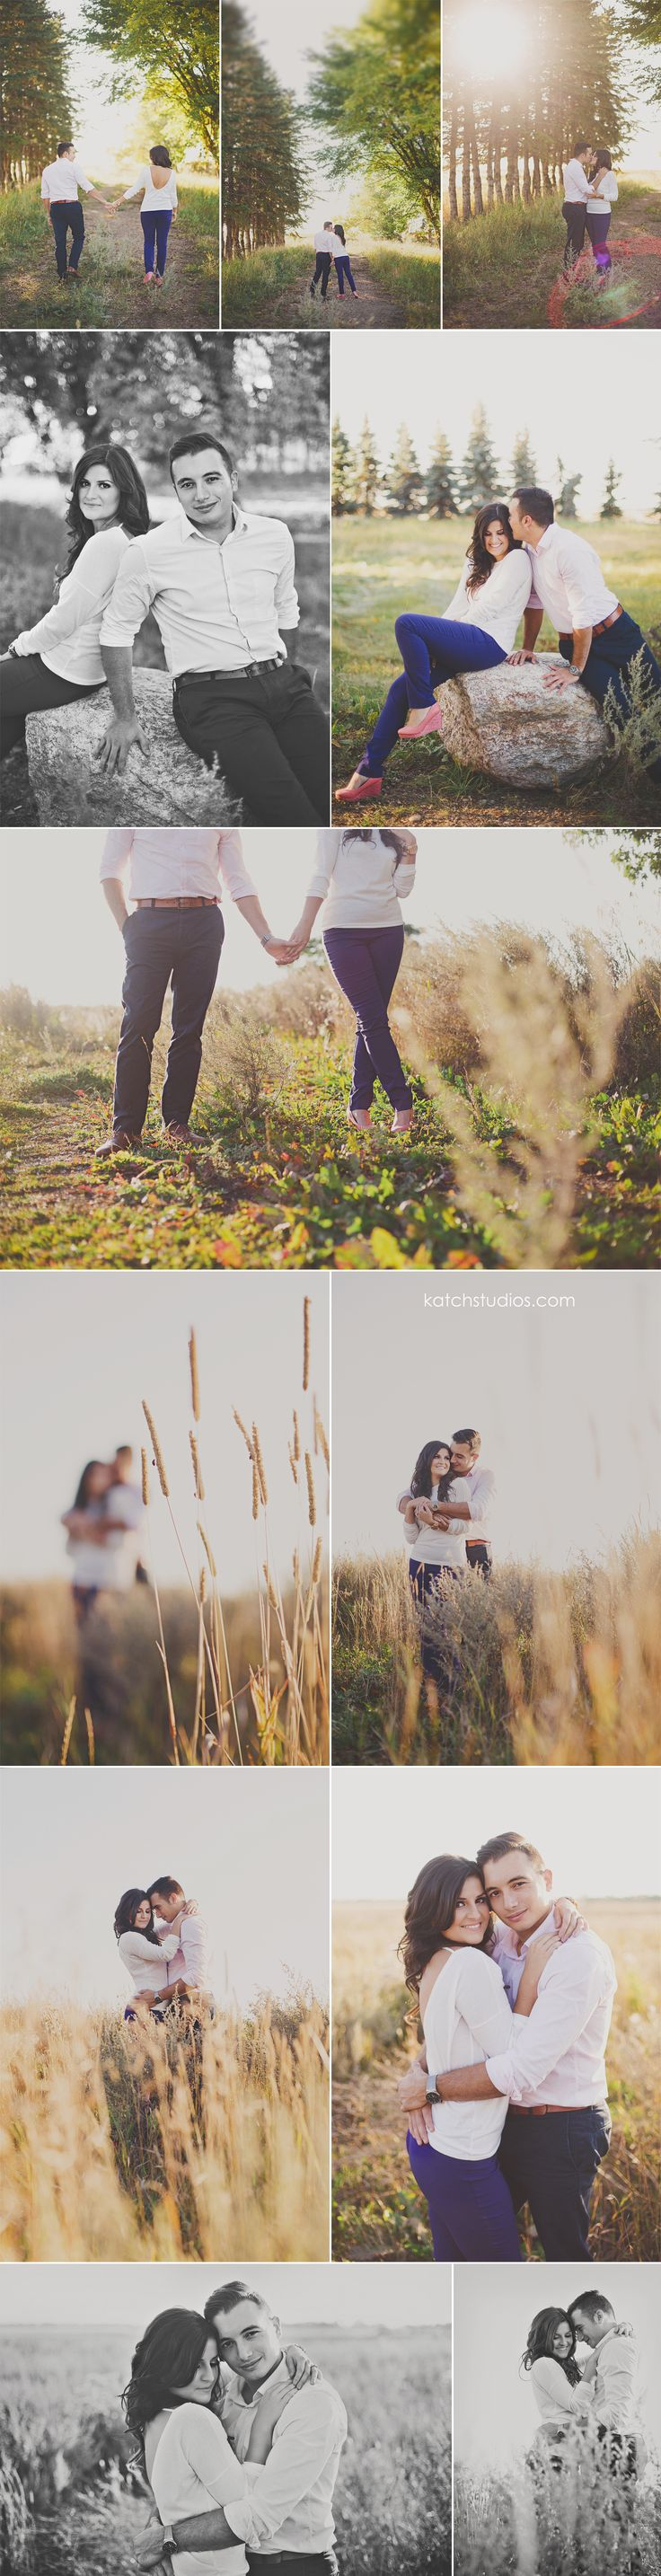 I have the perfect place in mind for pics like this!! Someone let me take your pictures lol